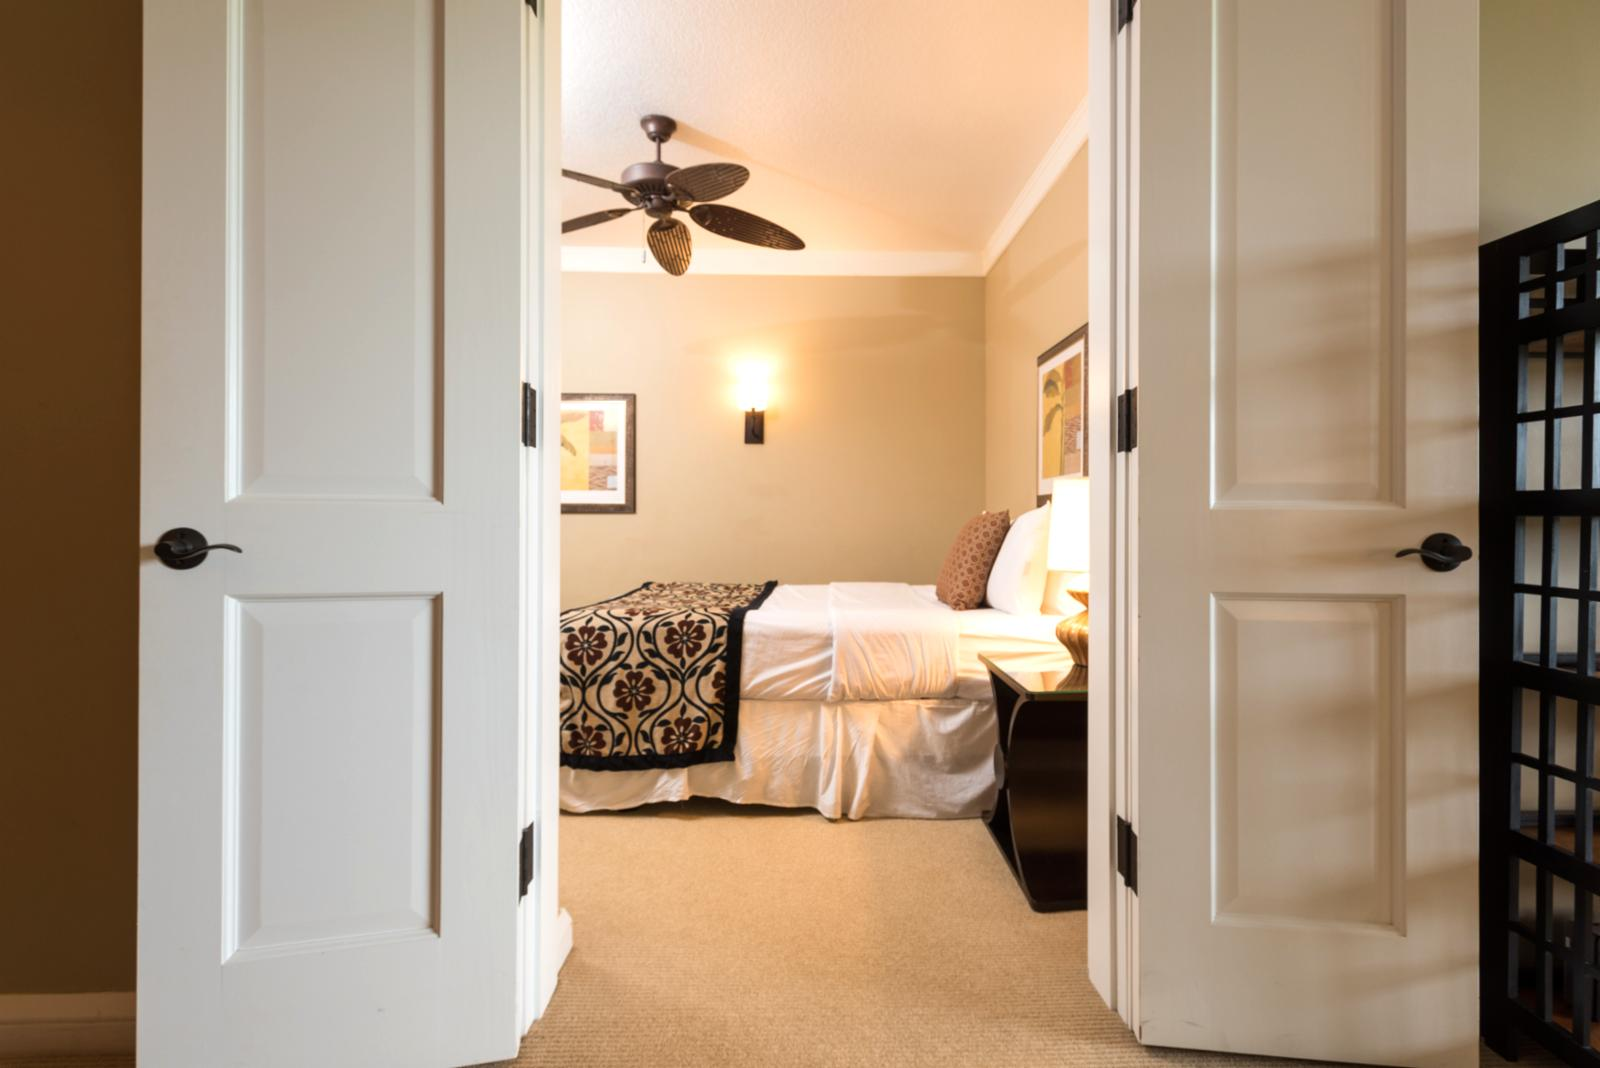 Entryway of den bedroom - both doors open.